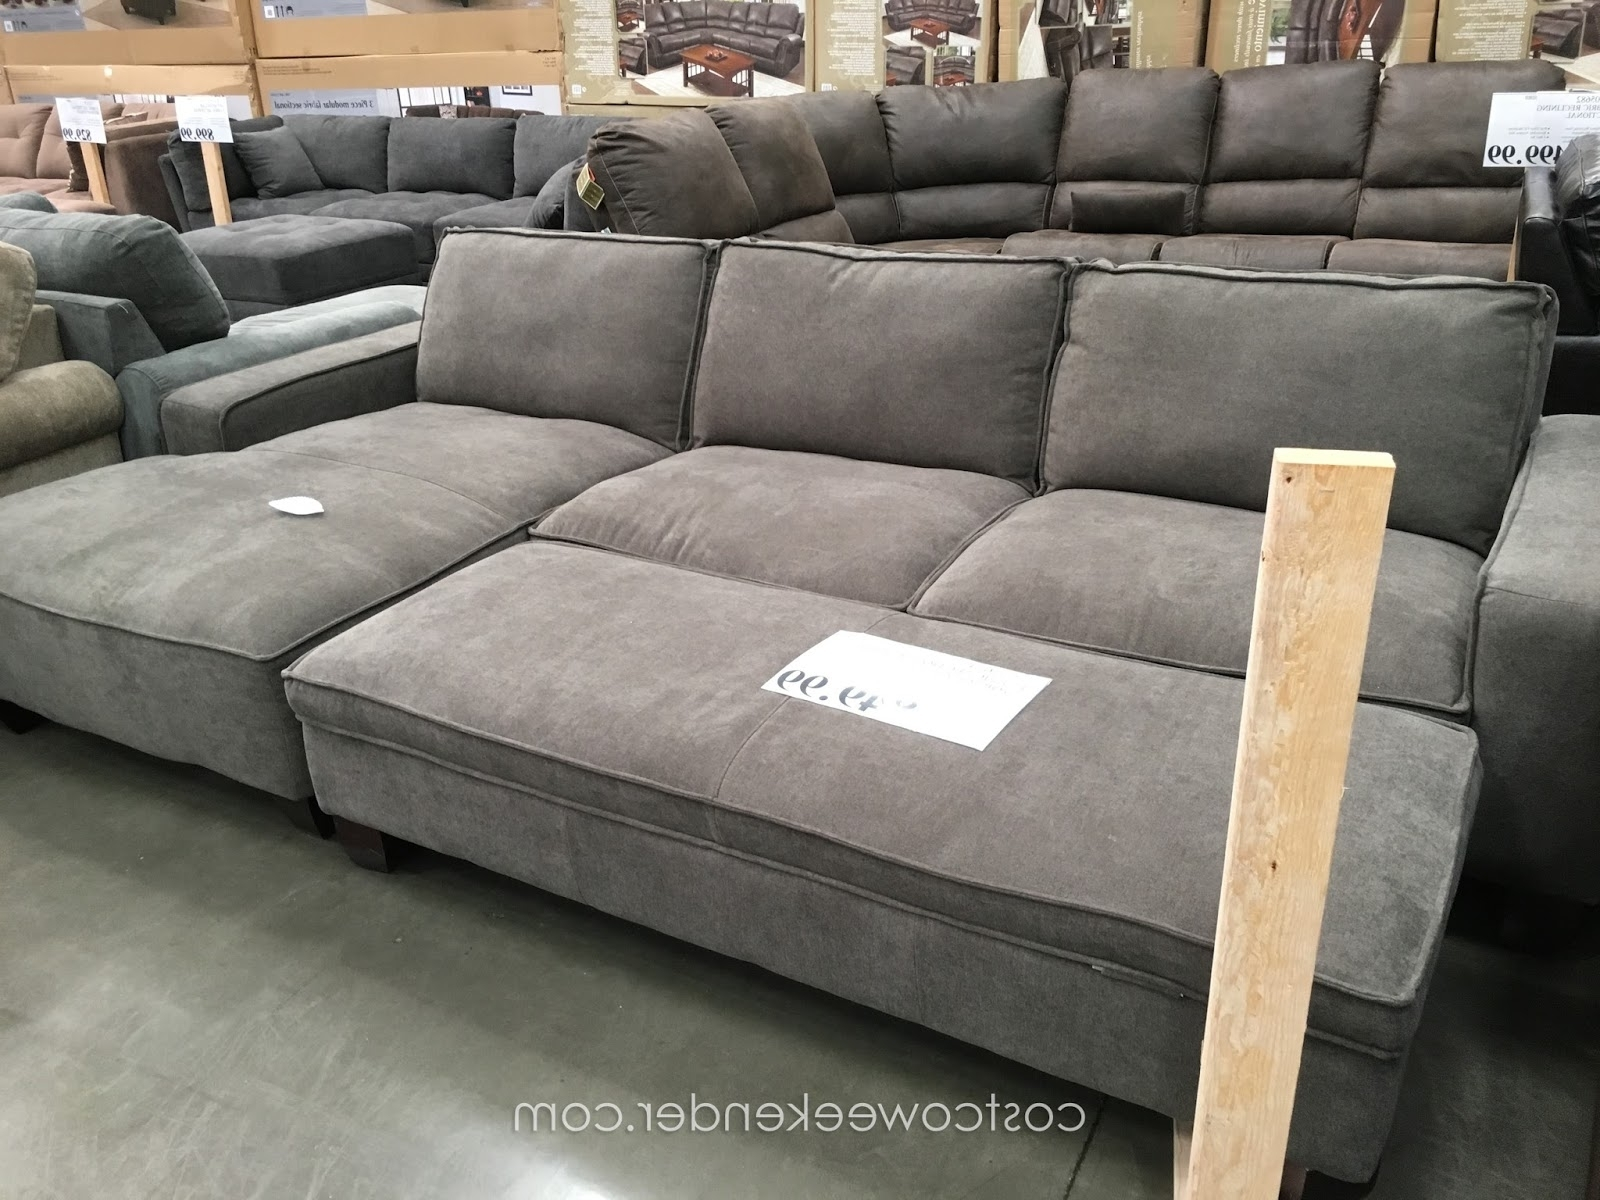 Latest Sectional Sofa Design: Sectional Sofa With Chaise And Ottoman Within Sofas With Chaise And Ottoman (View 2 of 20)